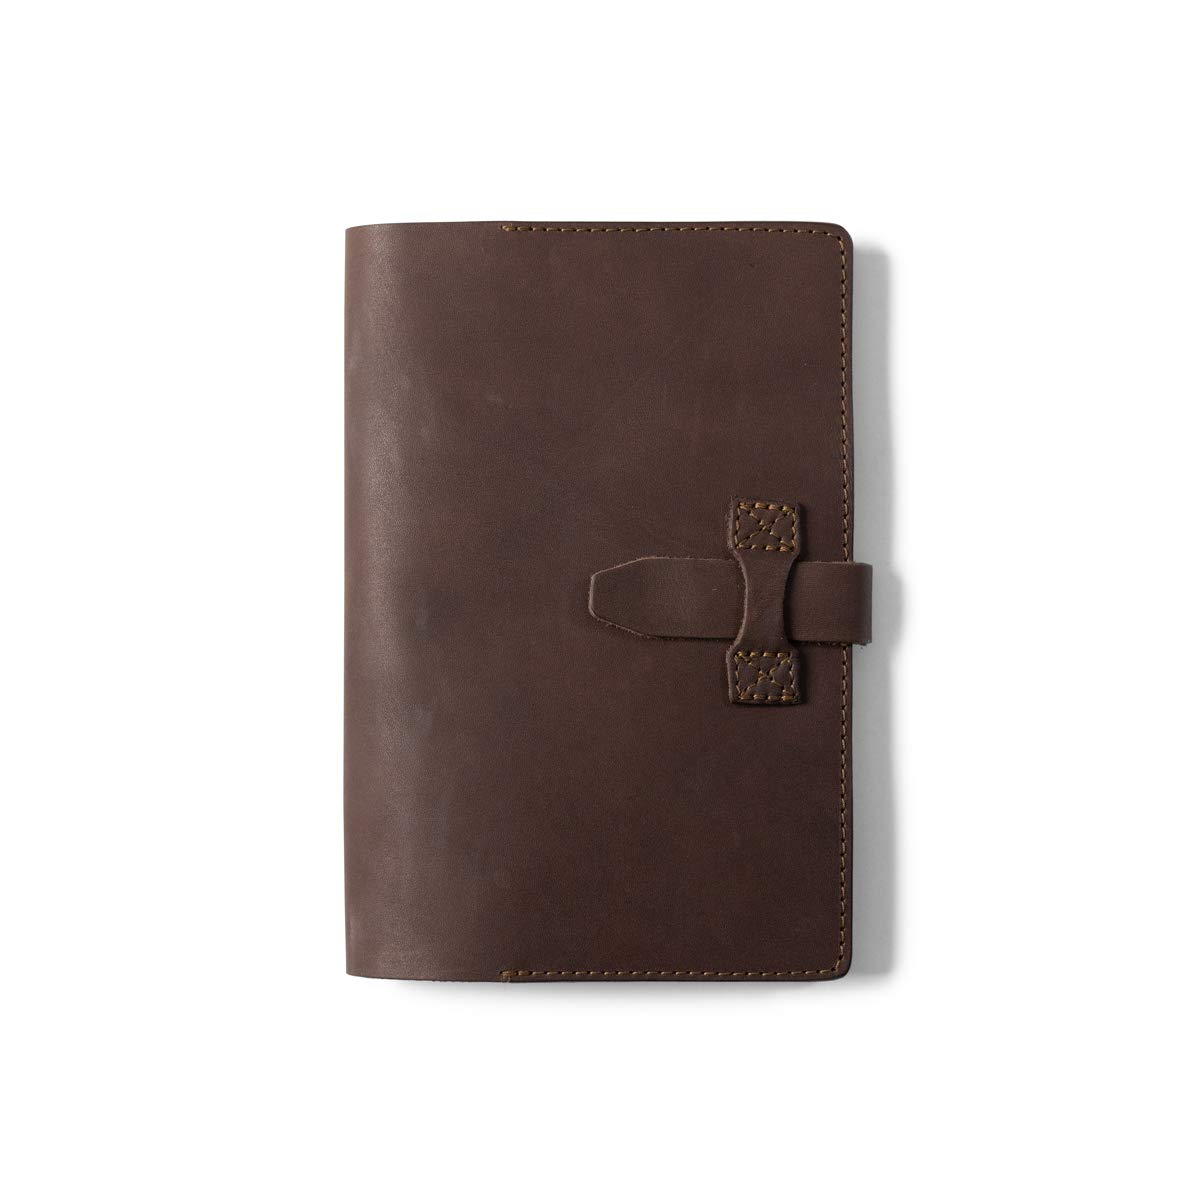 Rugged Mercantile Large Leather Journal Cover - Dark Briar by Rugged Mercantile